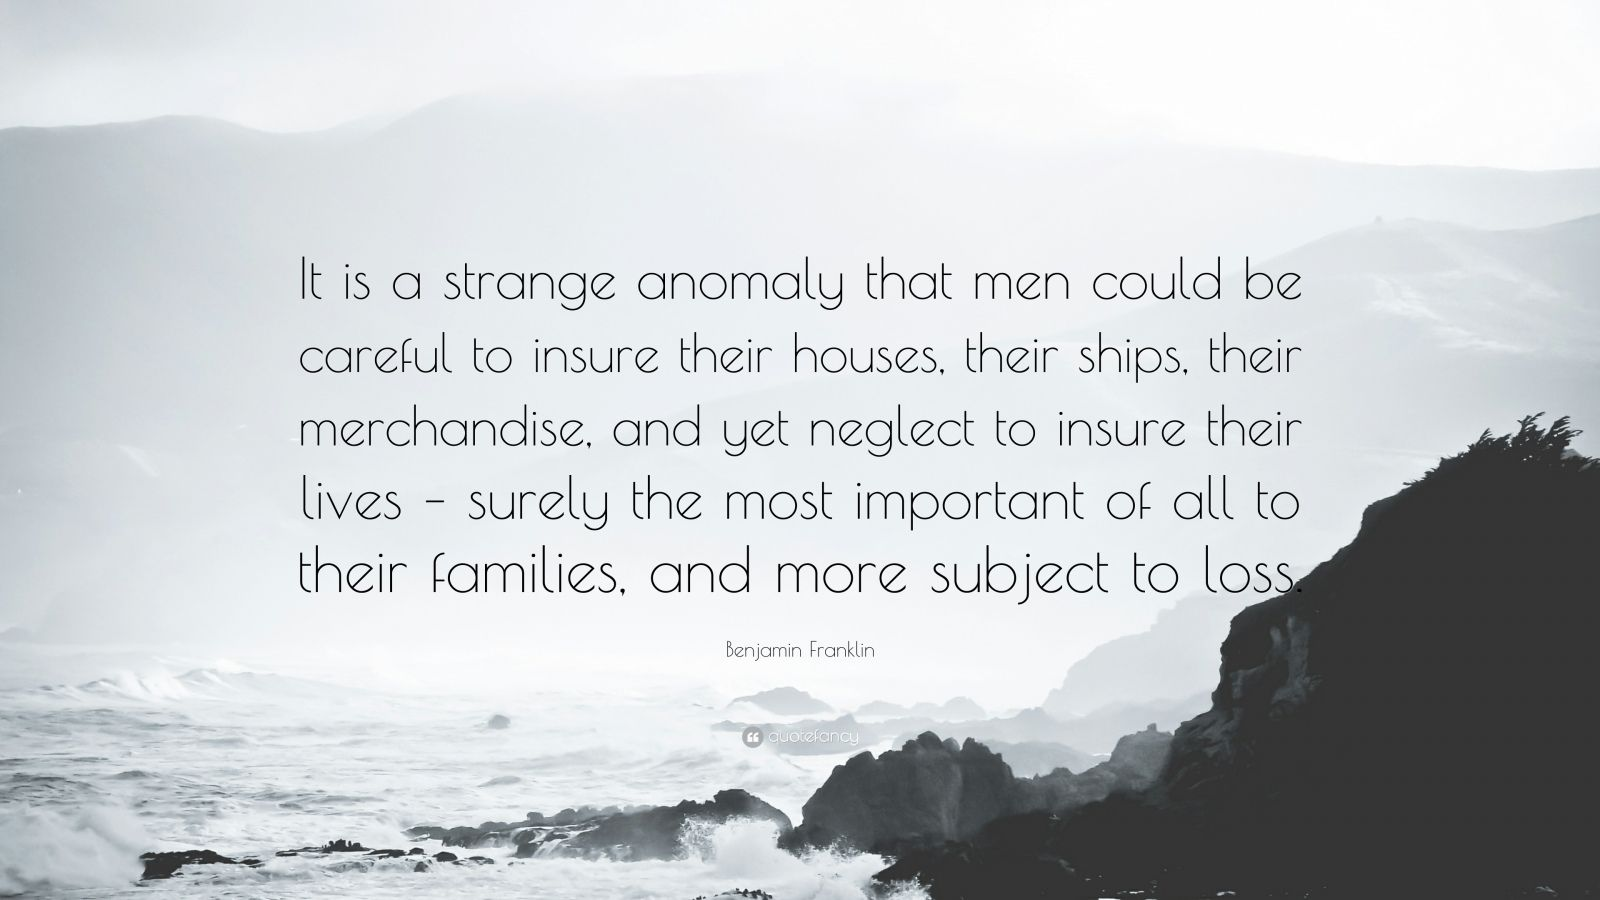 """Benjamin Franklin Quote: """"It is a strange anomaly that men could be careful to insure their houses, their ships, their merchandise, and yet neglect to insure their lives – surely the most important of all to their families, and more subject to loss."""""""